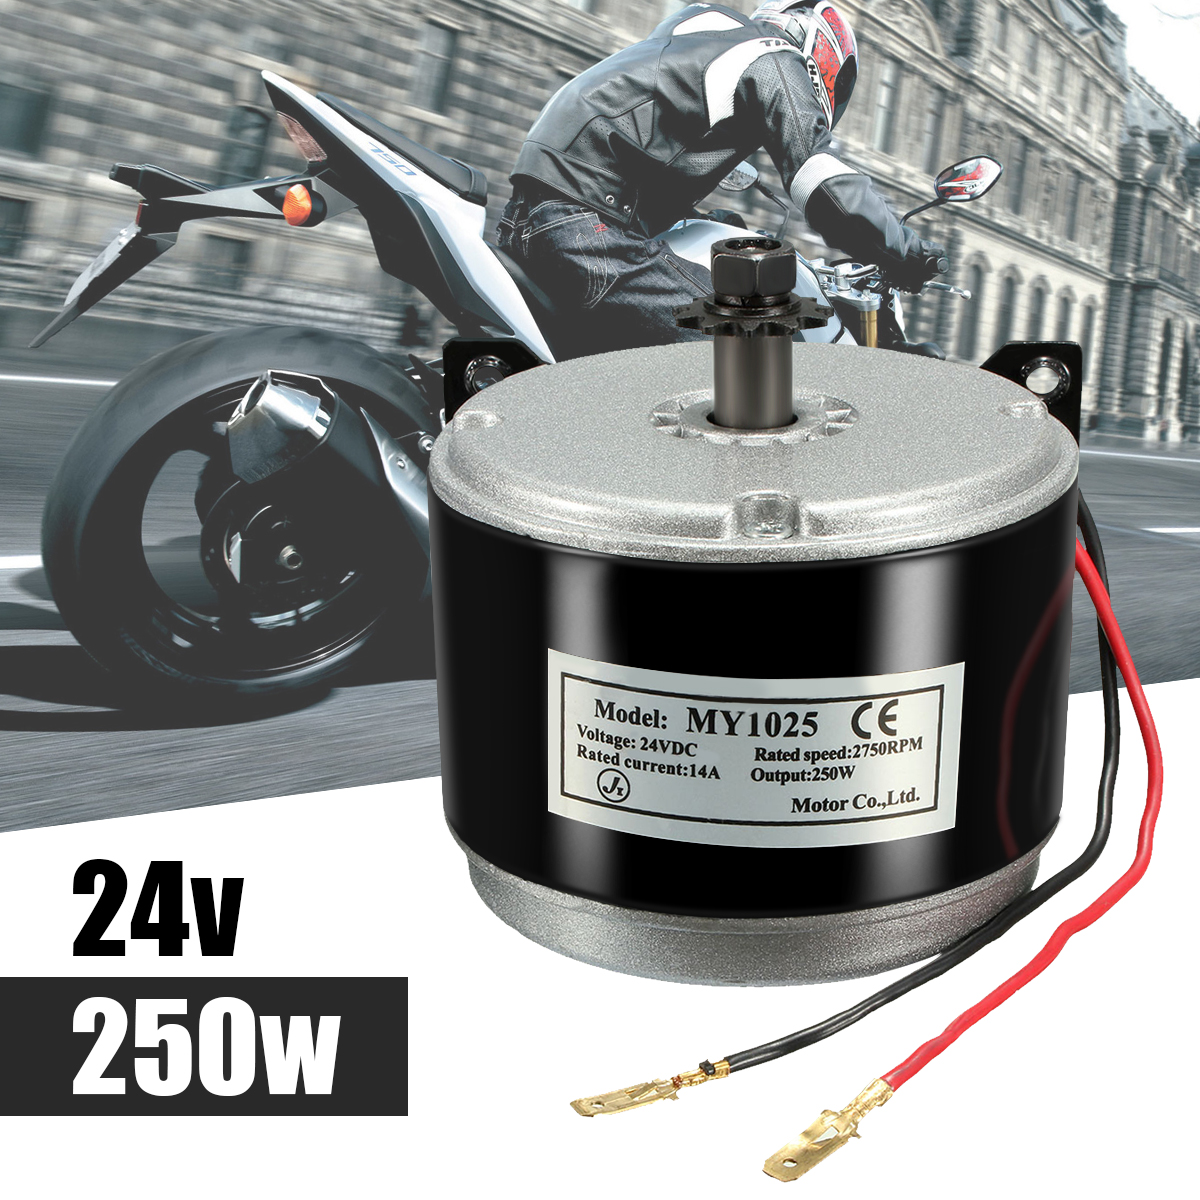 MY1025 24V 250W Electric Motor Brushed 2750RPM 2-Wired Chain For E-Bike Scooter